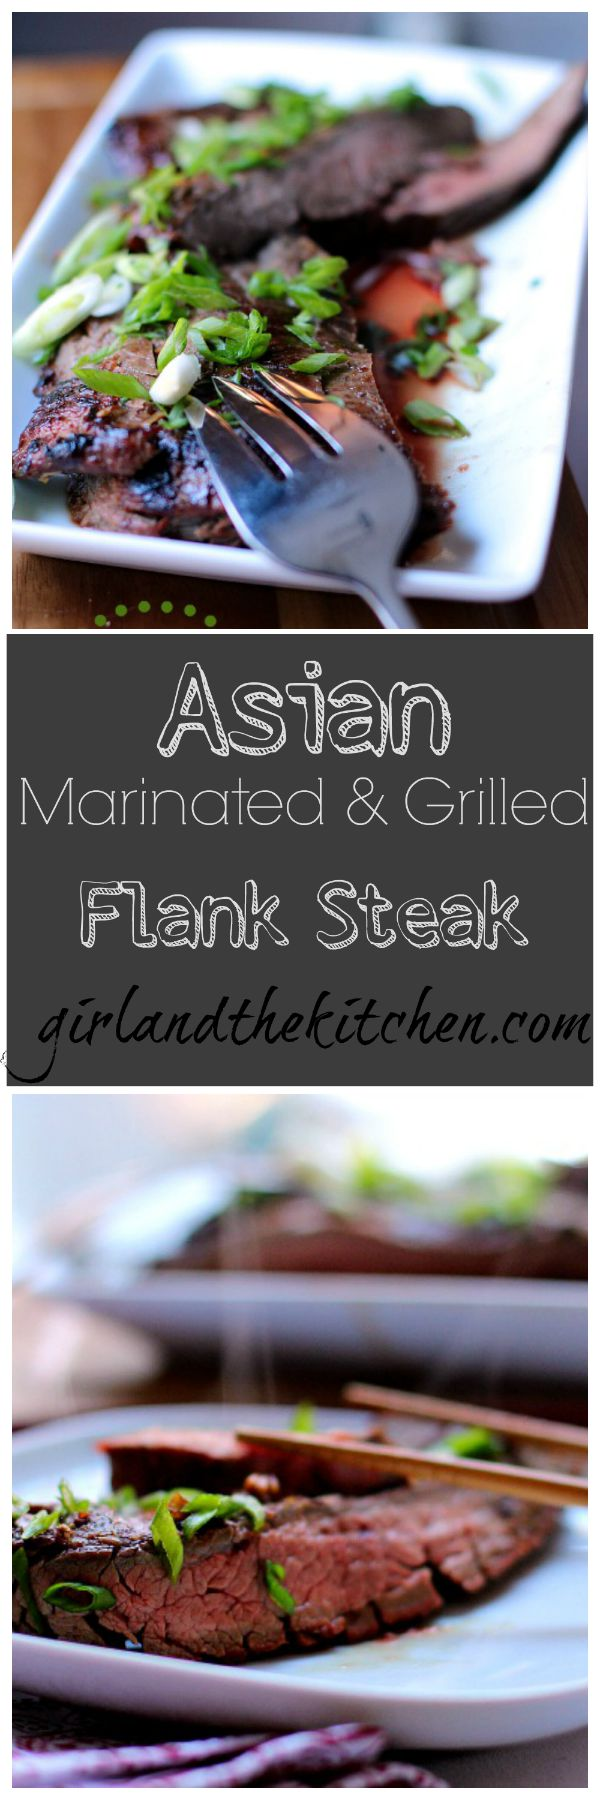 Asian Marinated and Grilled Flank Steak. Girl and the Kitchen 07